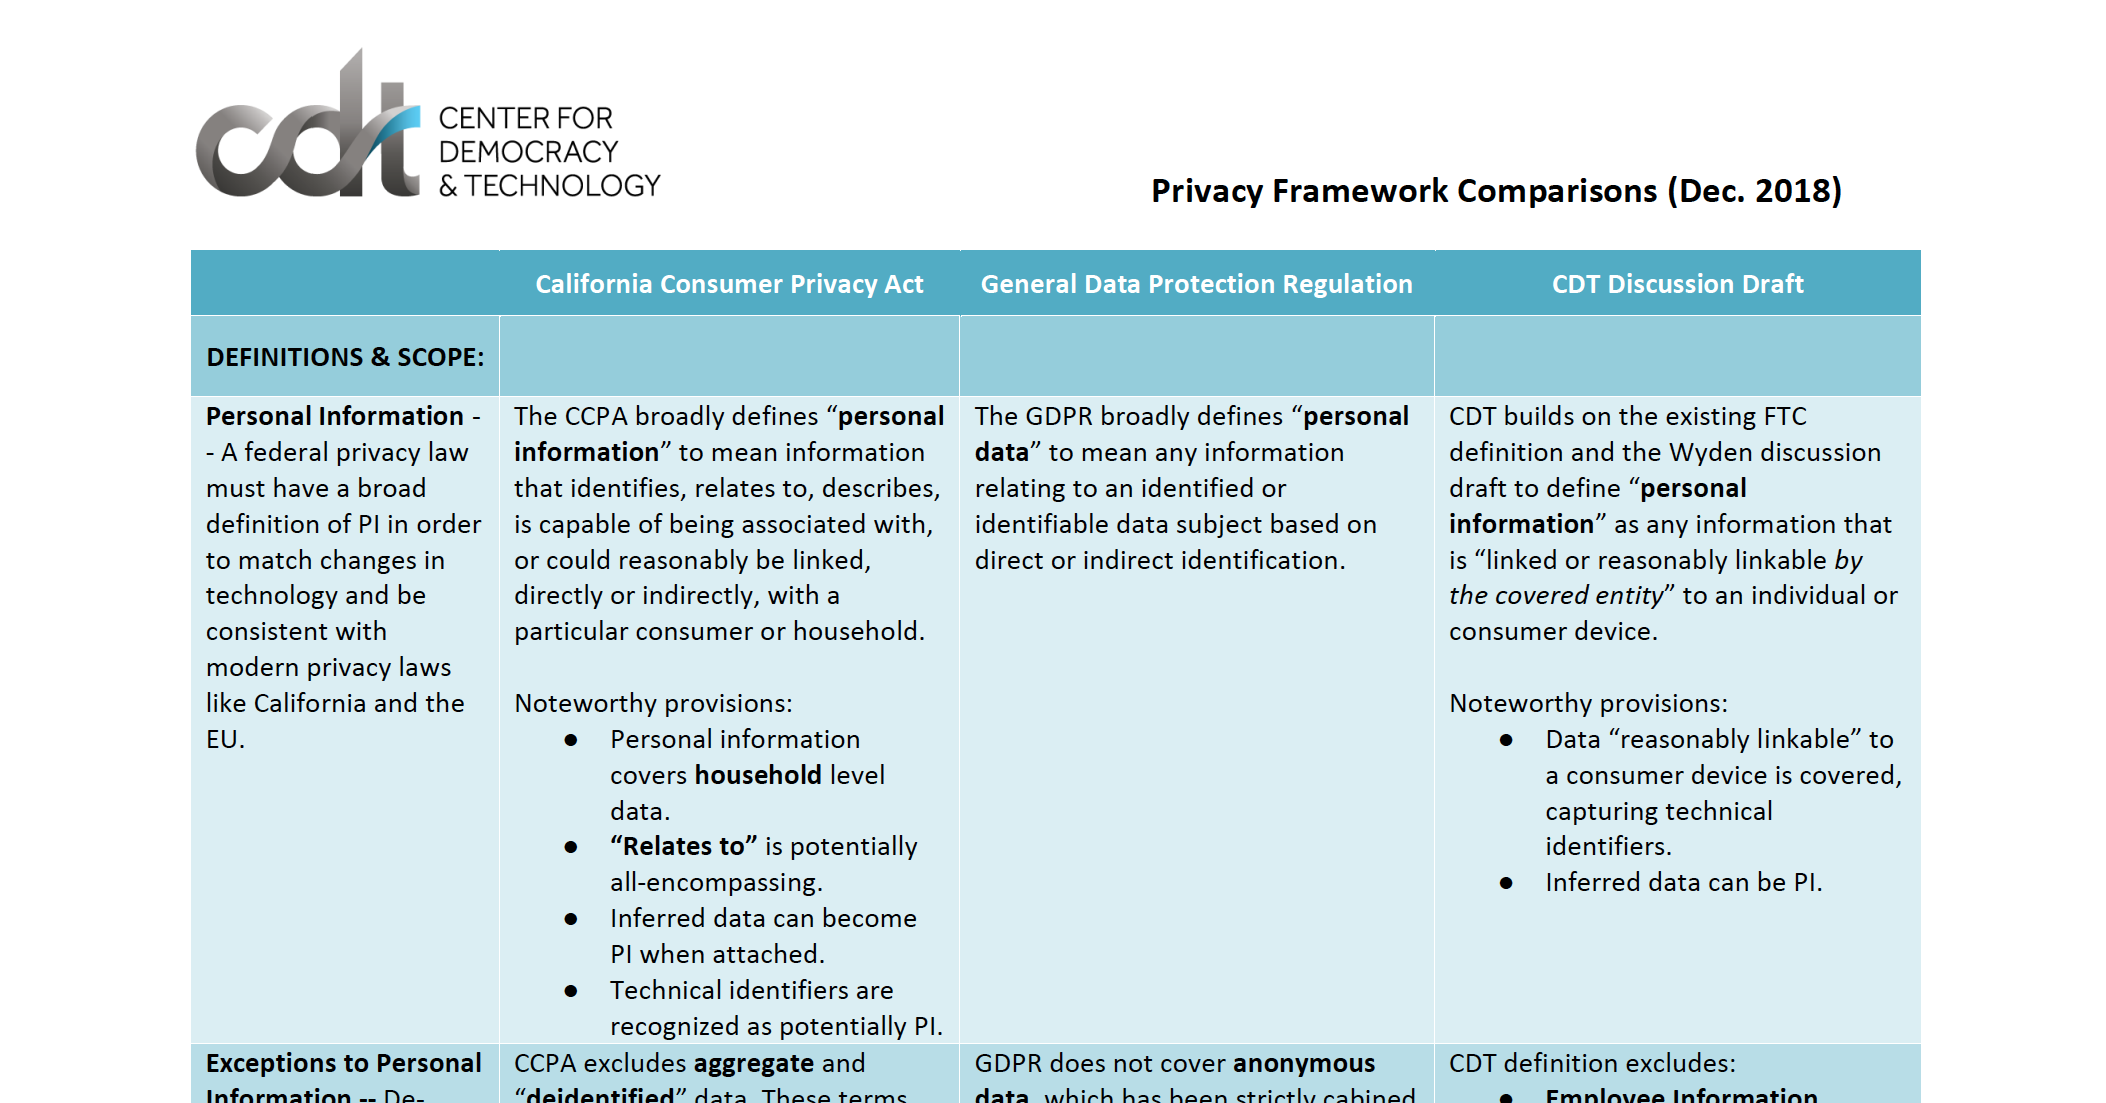 Comparison of CDT's Proposed Privacy Bill with GDPR and CCPA